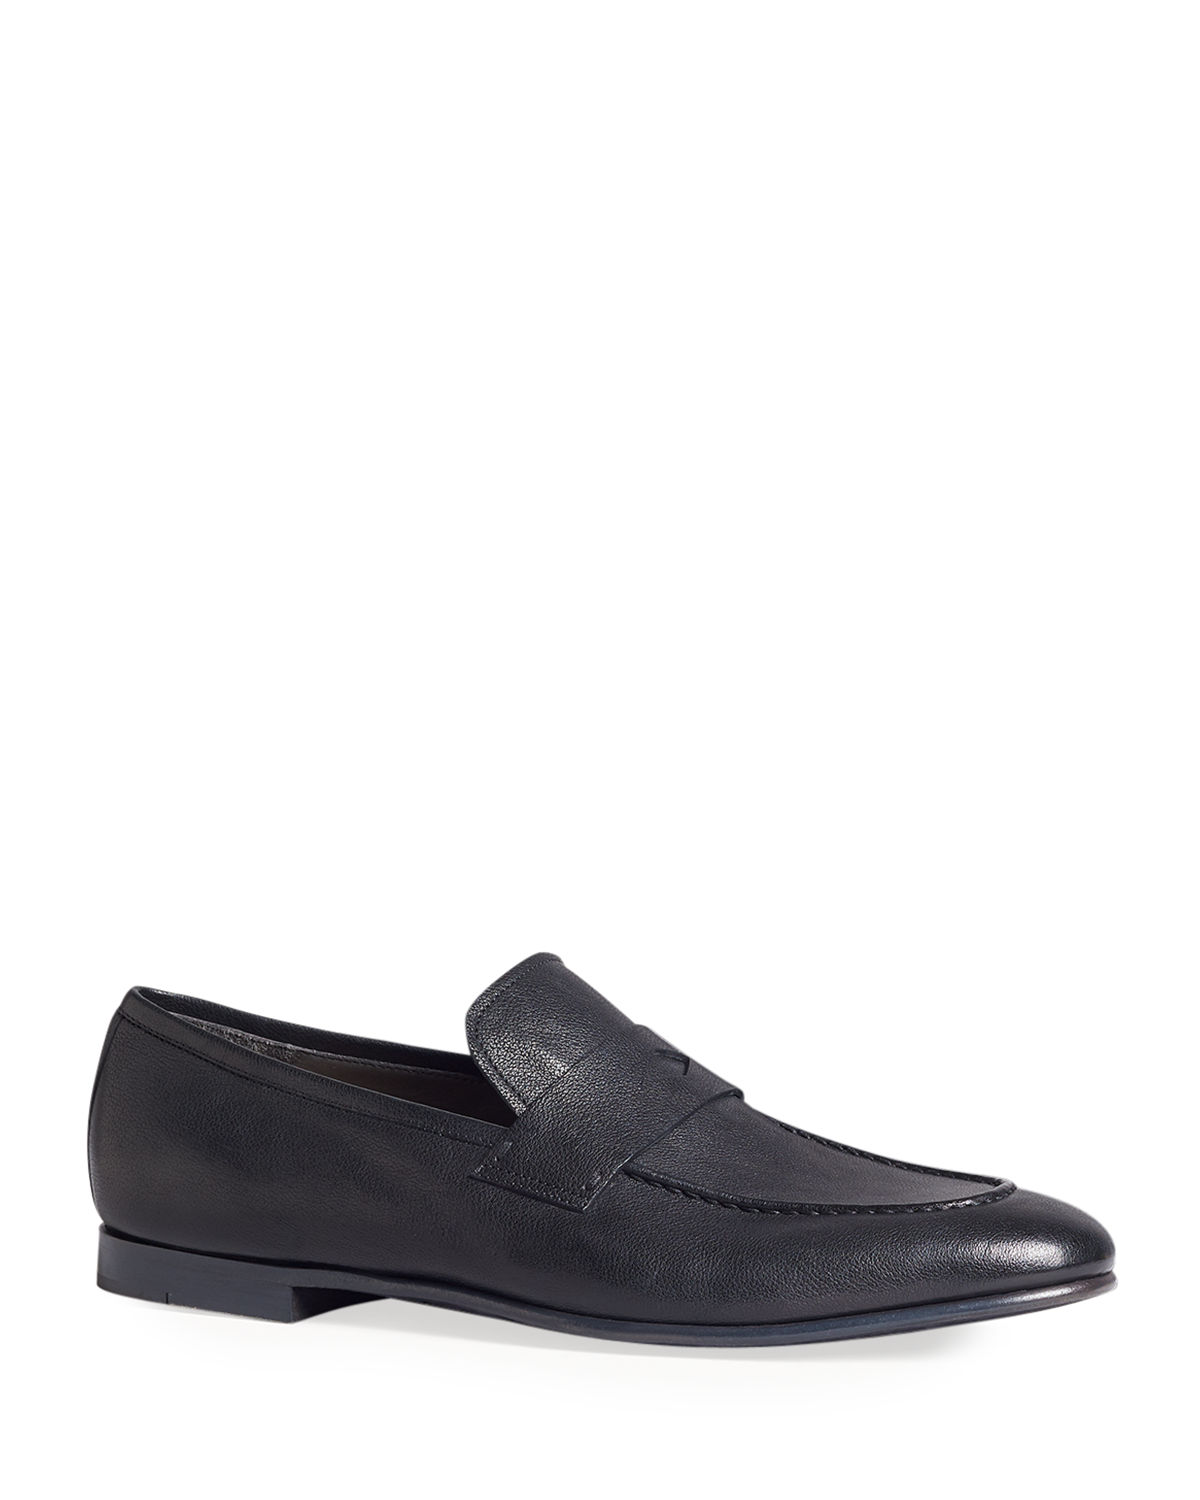 Dunhill Loafers MEN'S ENGINE TURN BUFFALO LEATHER PENNY LOAFERS